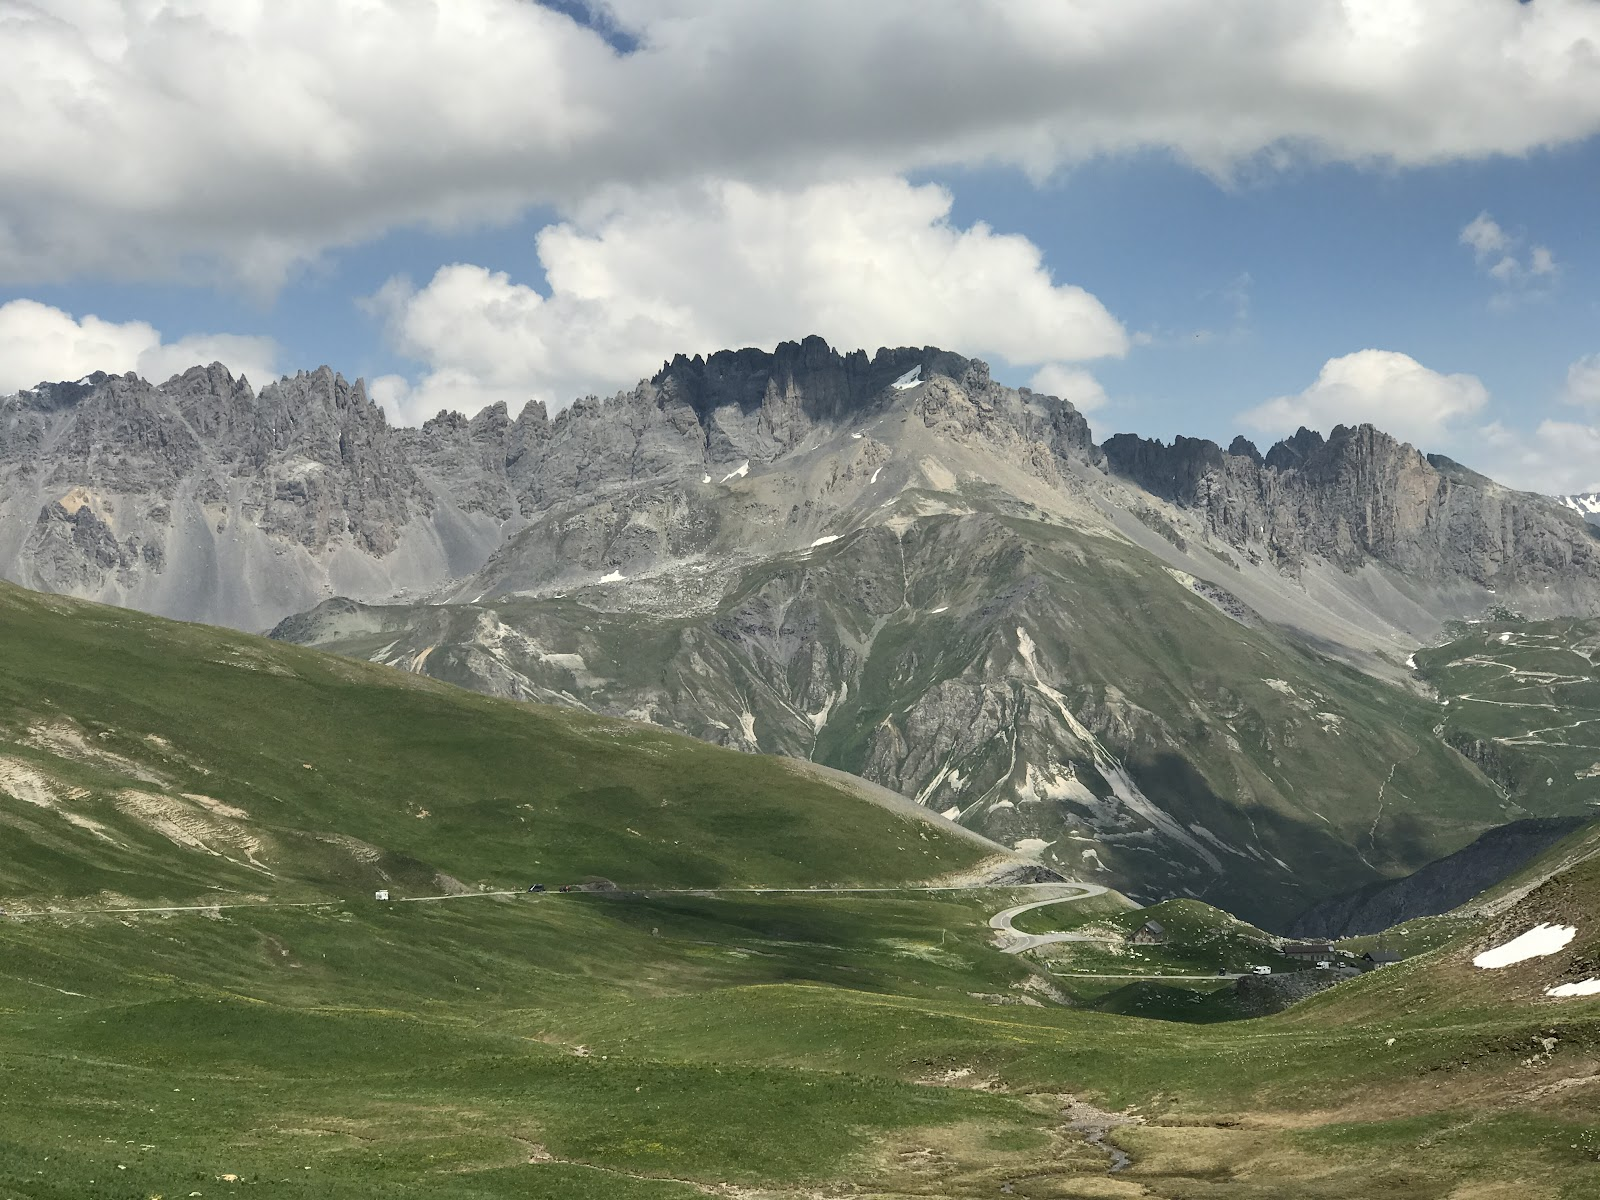 Bicycle climb of Col du Galibier from Villar-D'Arene - mountains and road